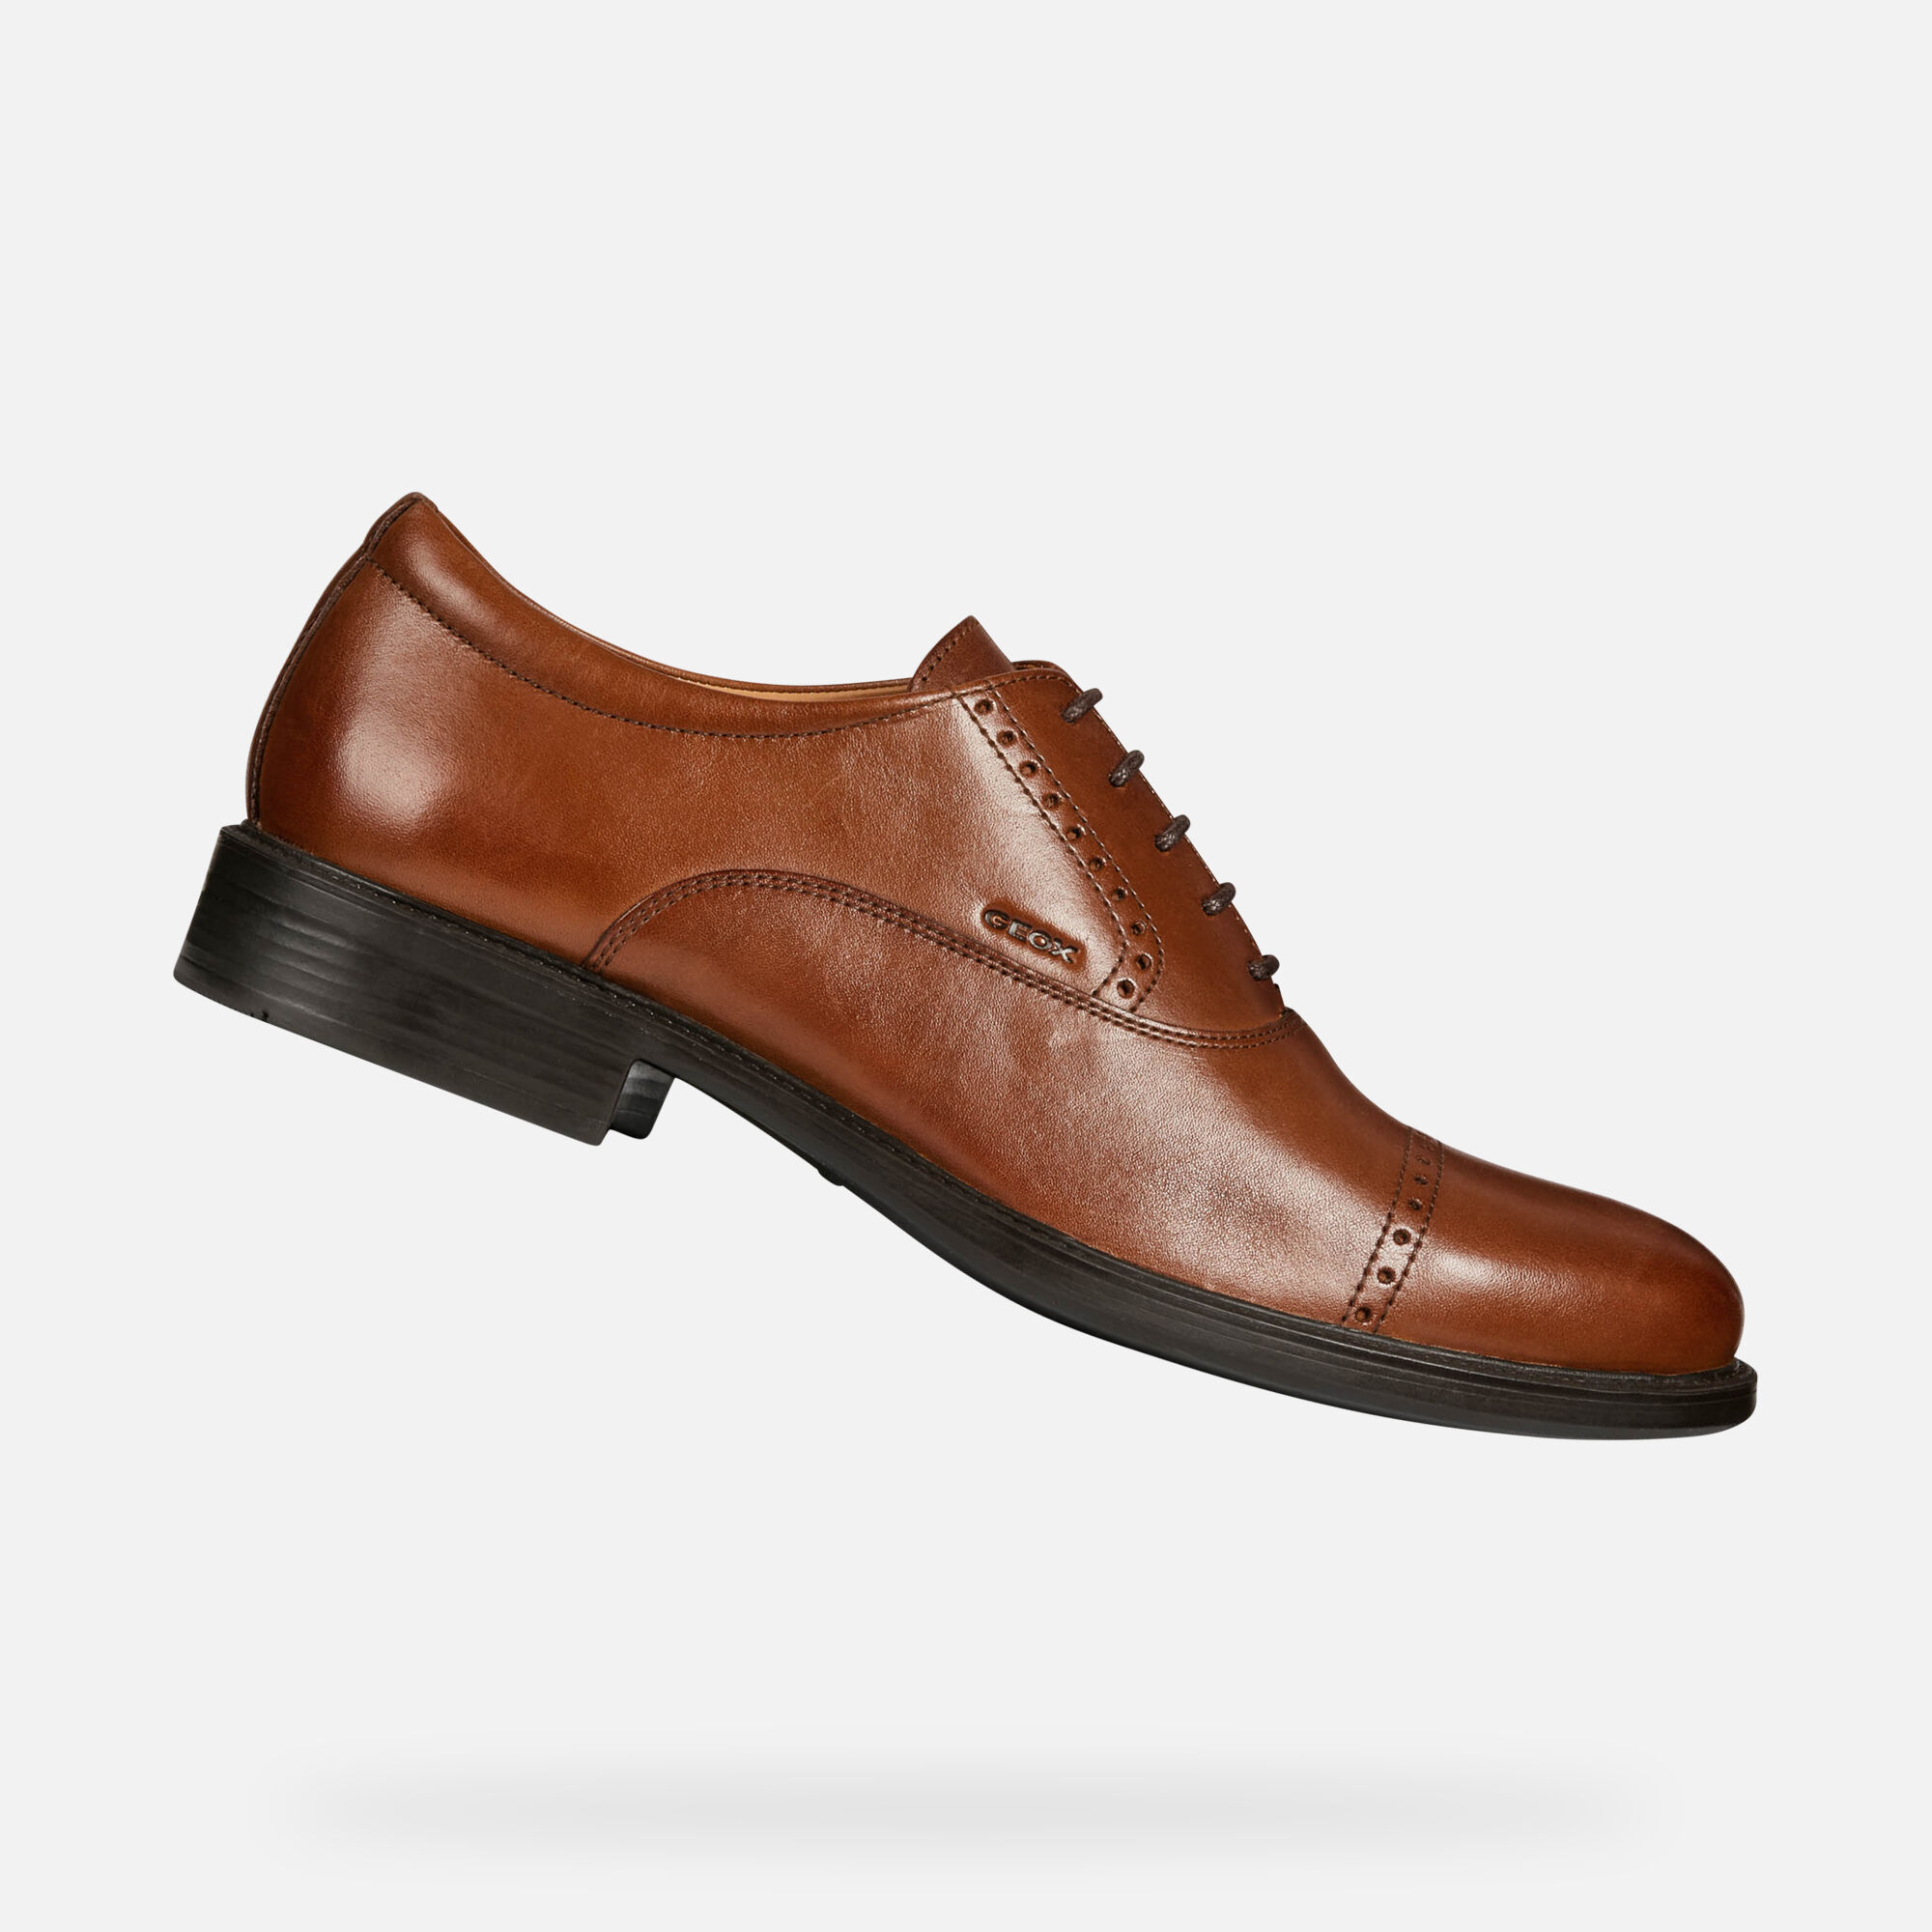 Geox UOMO CARNABY: Brown Man Shoes | Geox SS19